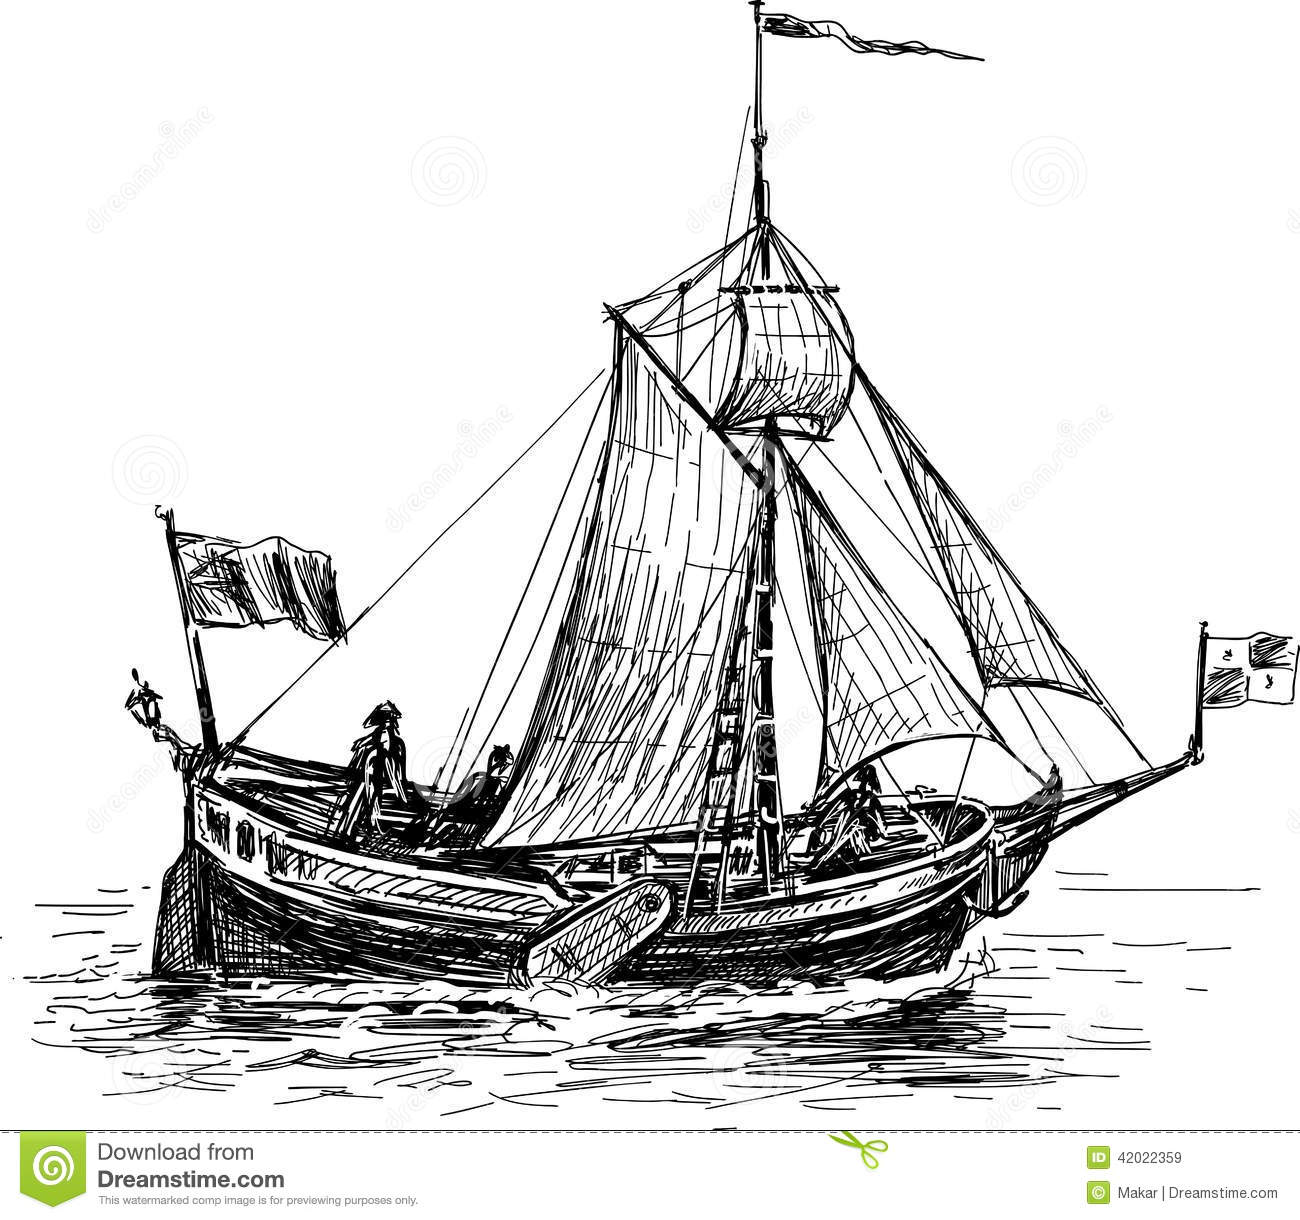 Schets Van De Varende Boot Vector Illustratie Illustratie